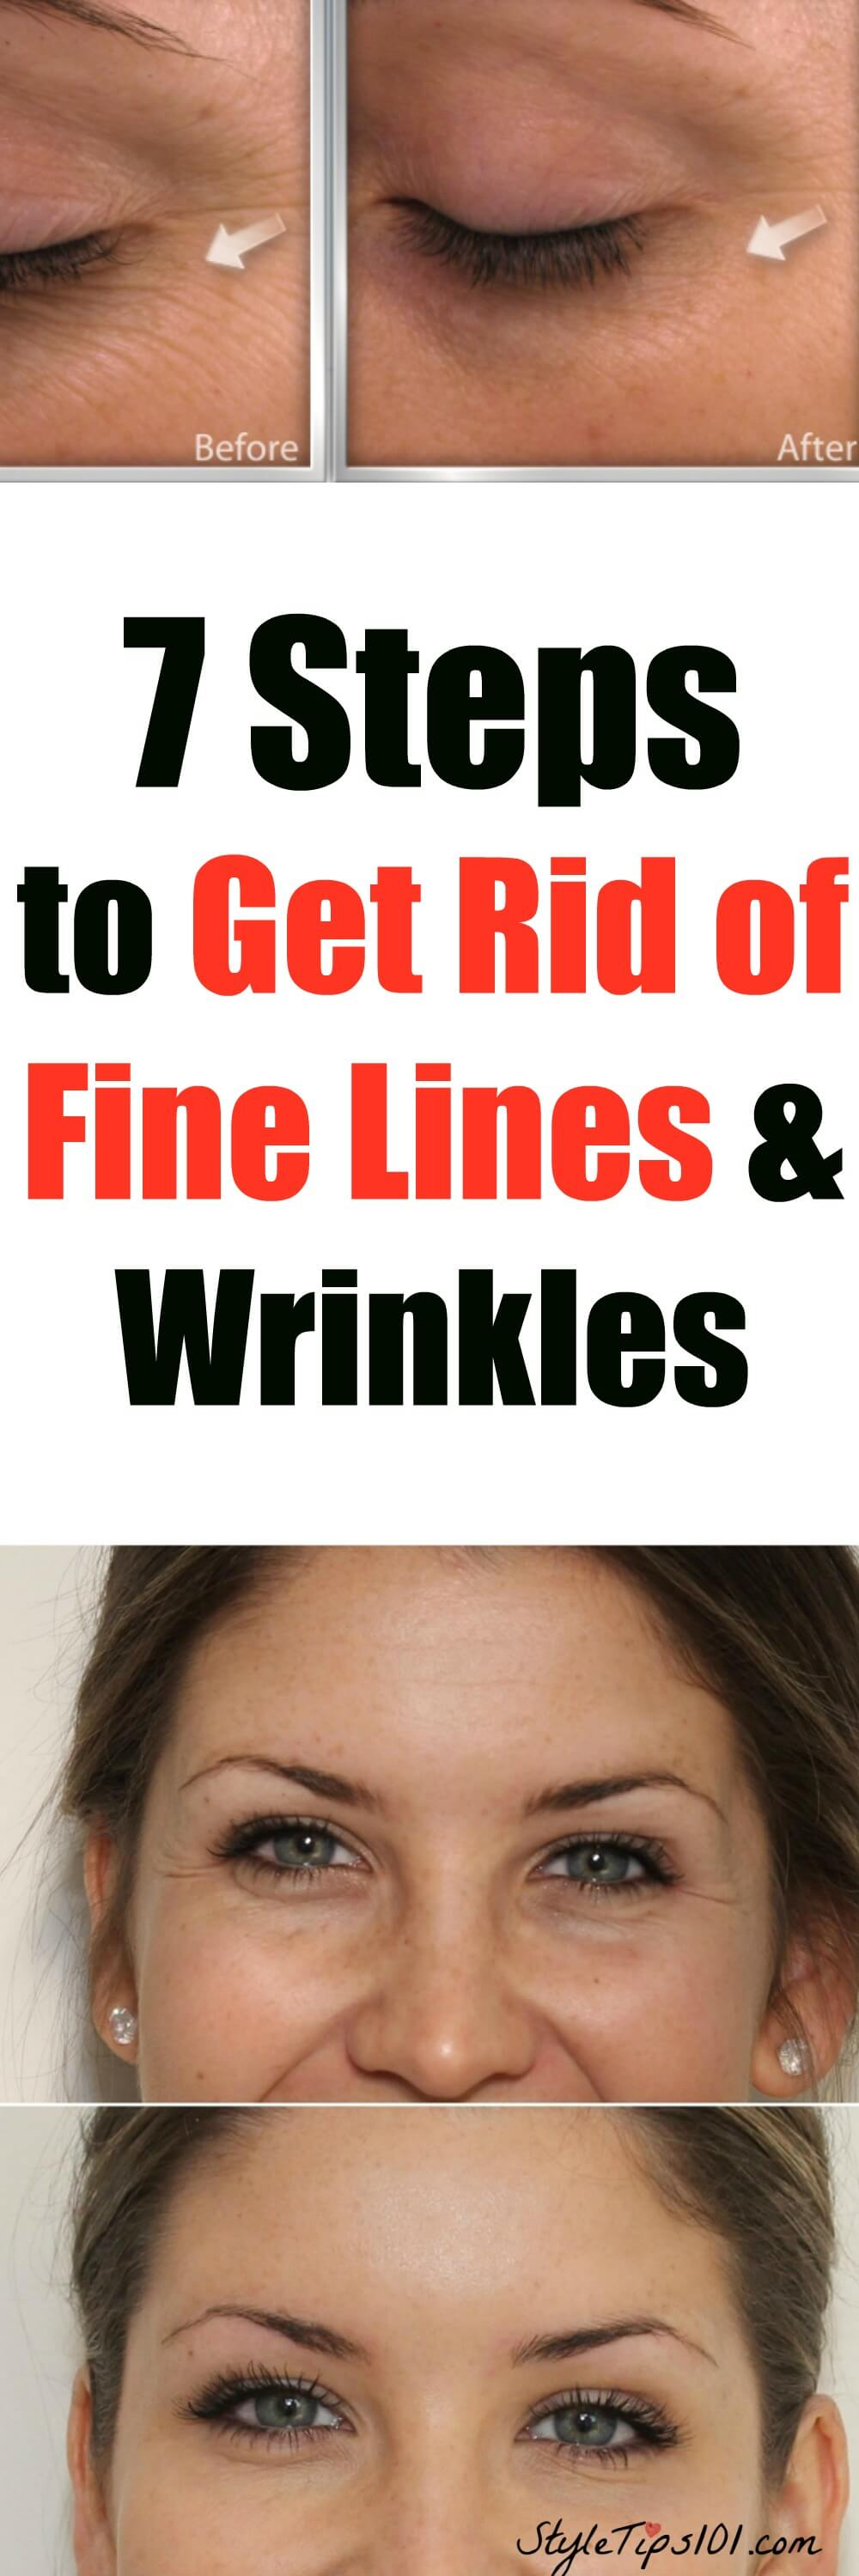 get rid of fine lines